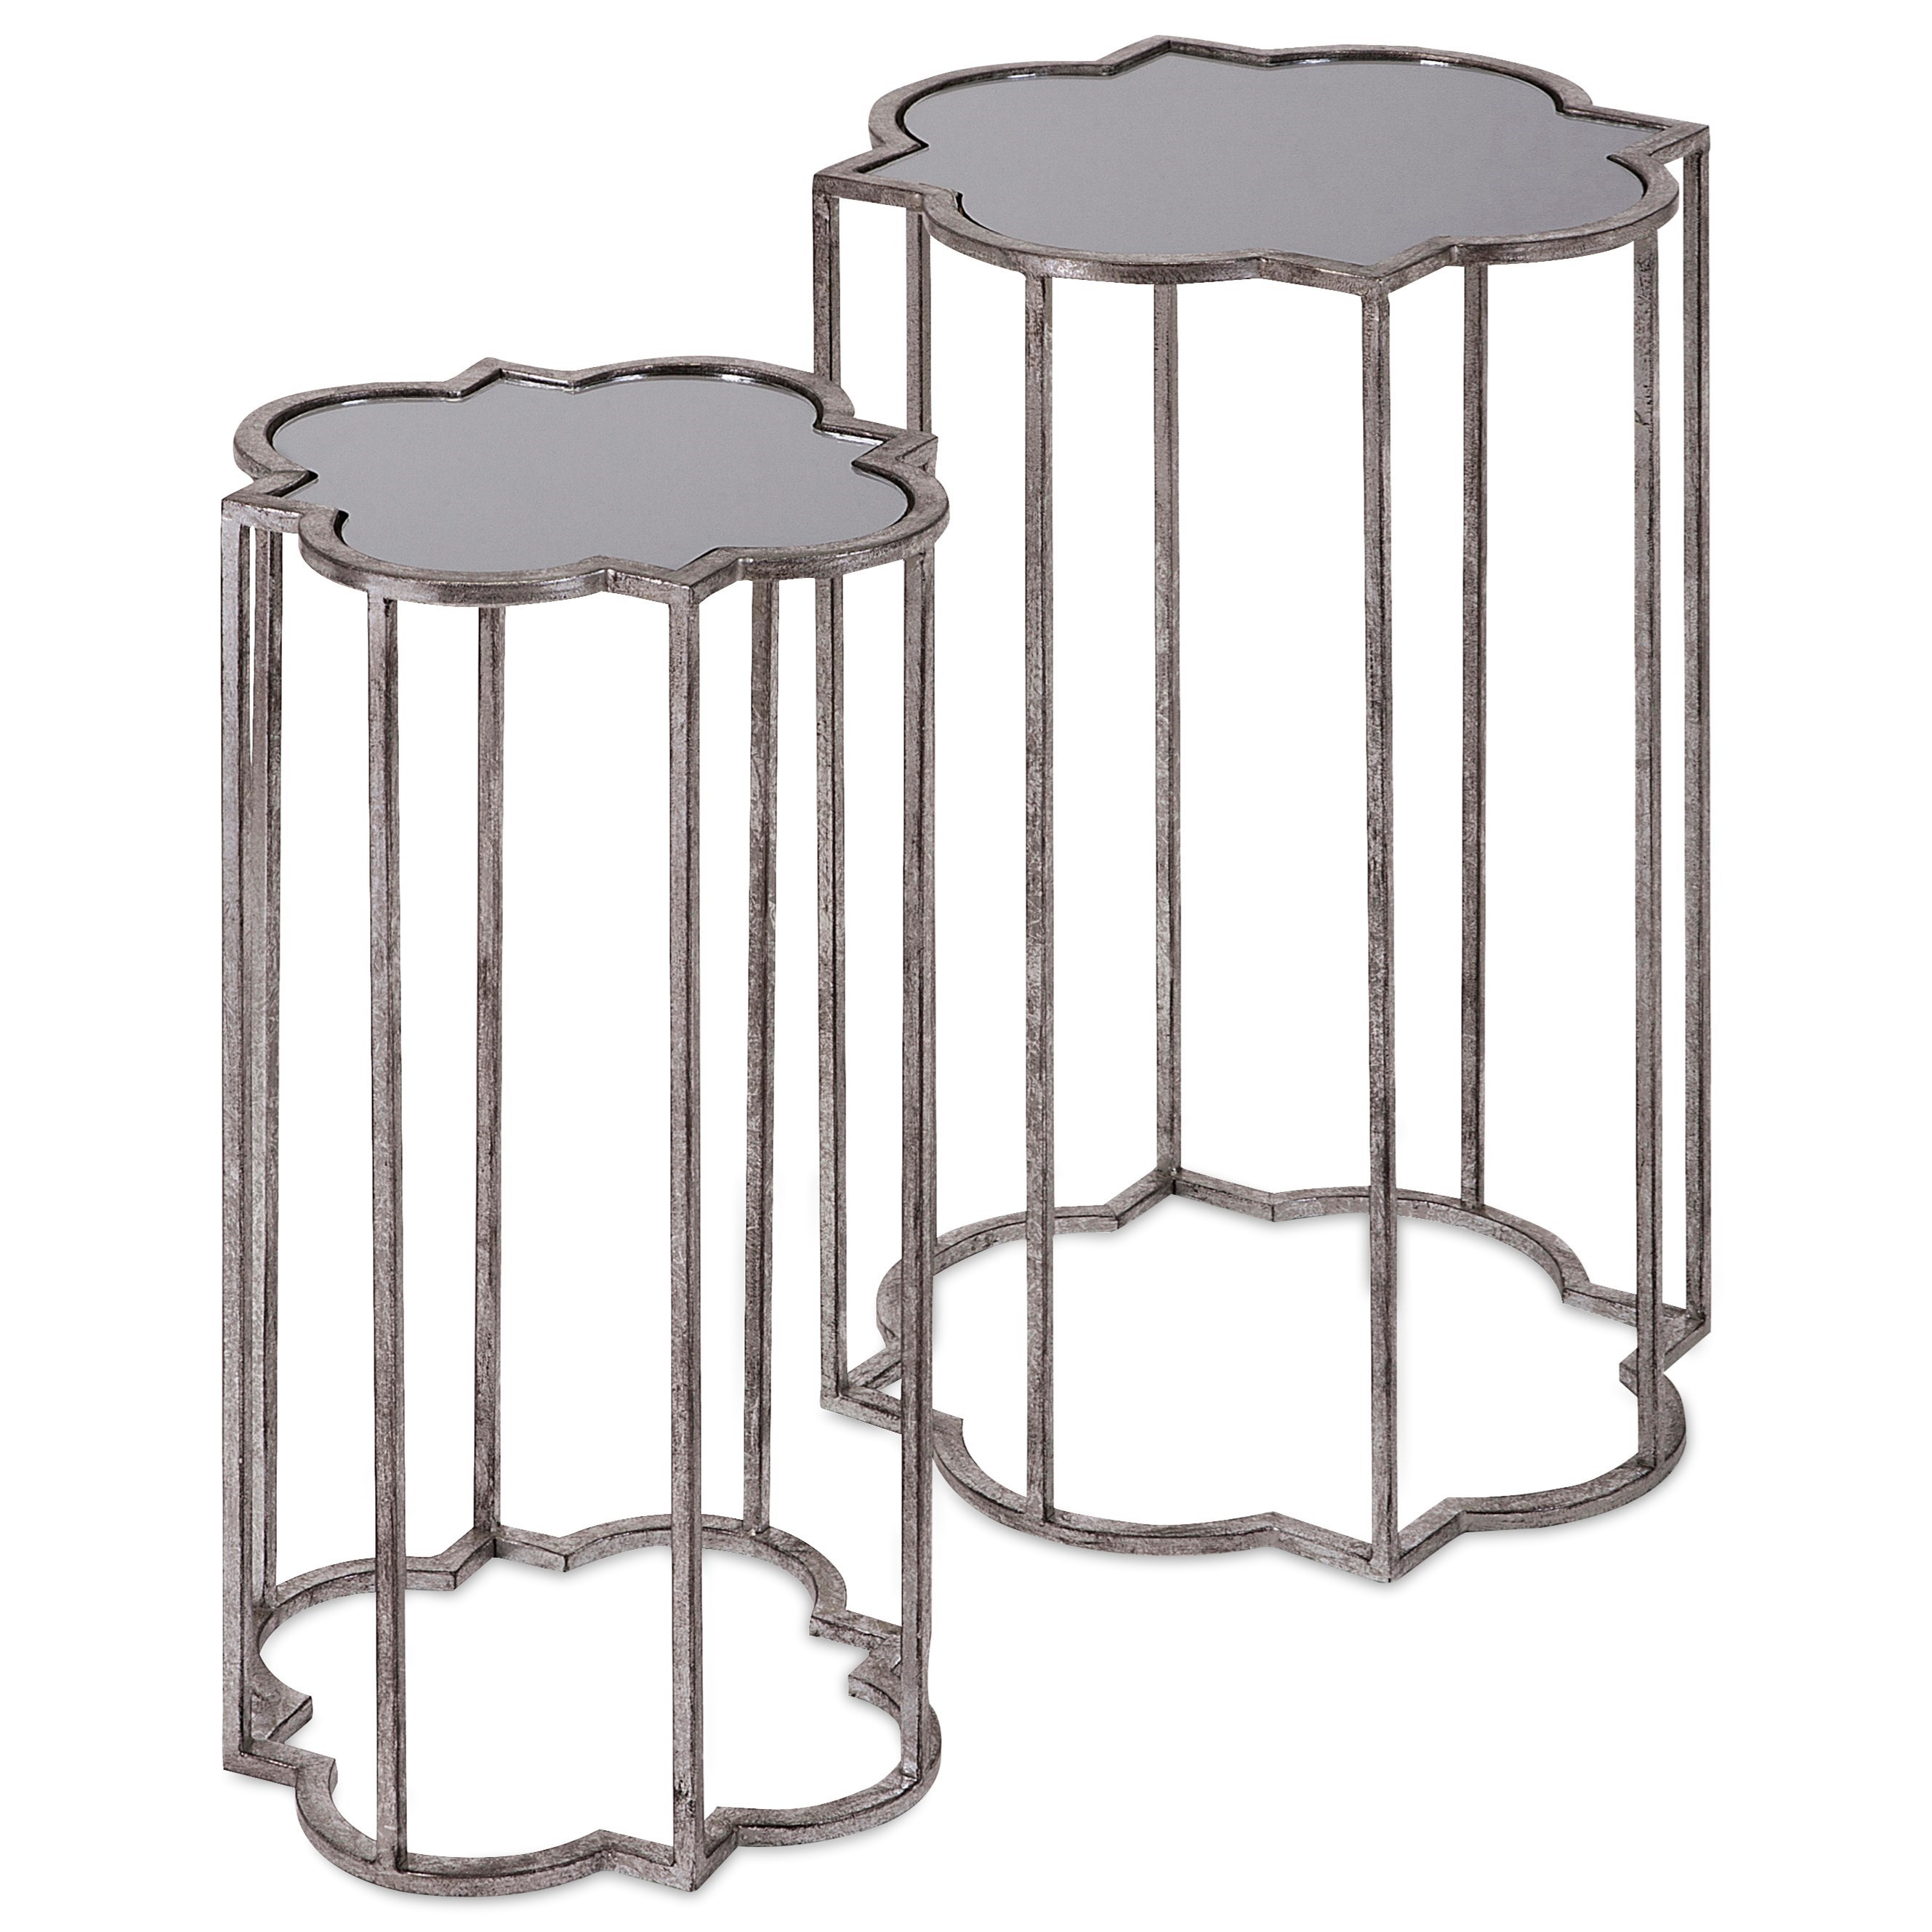 Accent Tables and Cabinets Acworth Silver Leaf Tables - Set of 2 by IMAX Worldwide Home at Alison Craig Home Furnishings